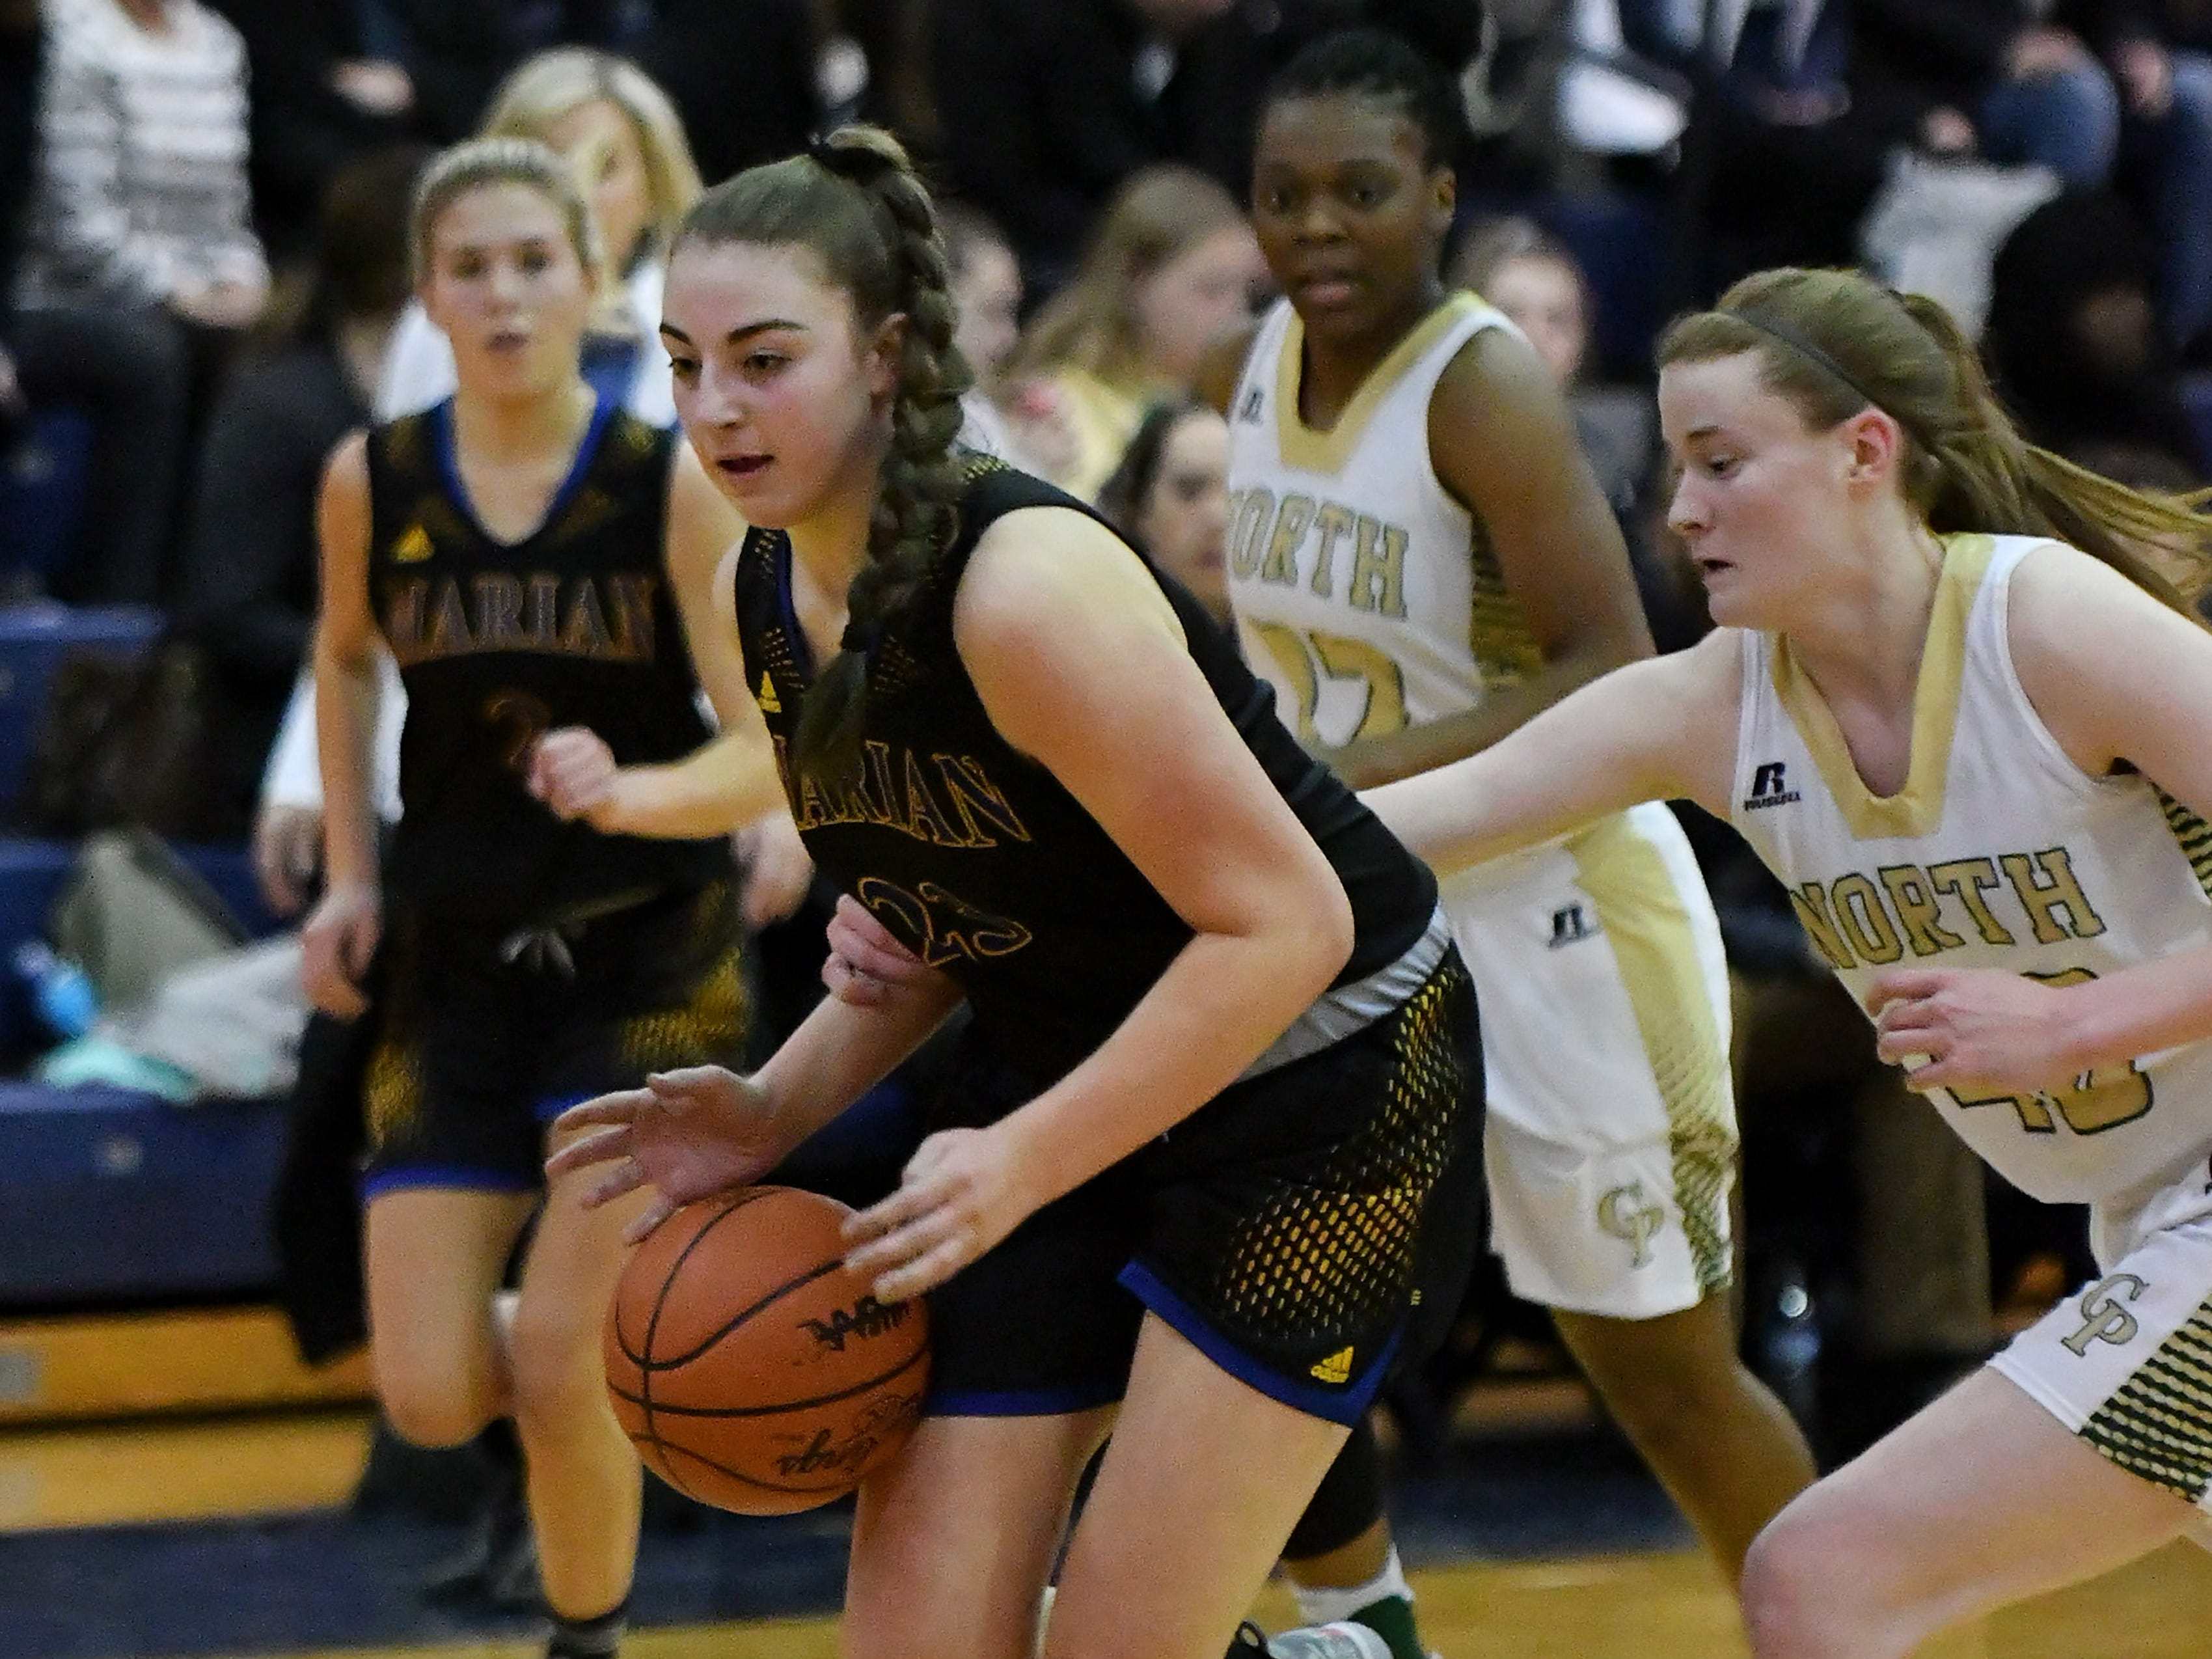 Grosse Pointe North's Julia Ayrault reaches in on Marian's Lauren Licari, left, in the first half.